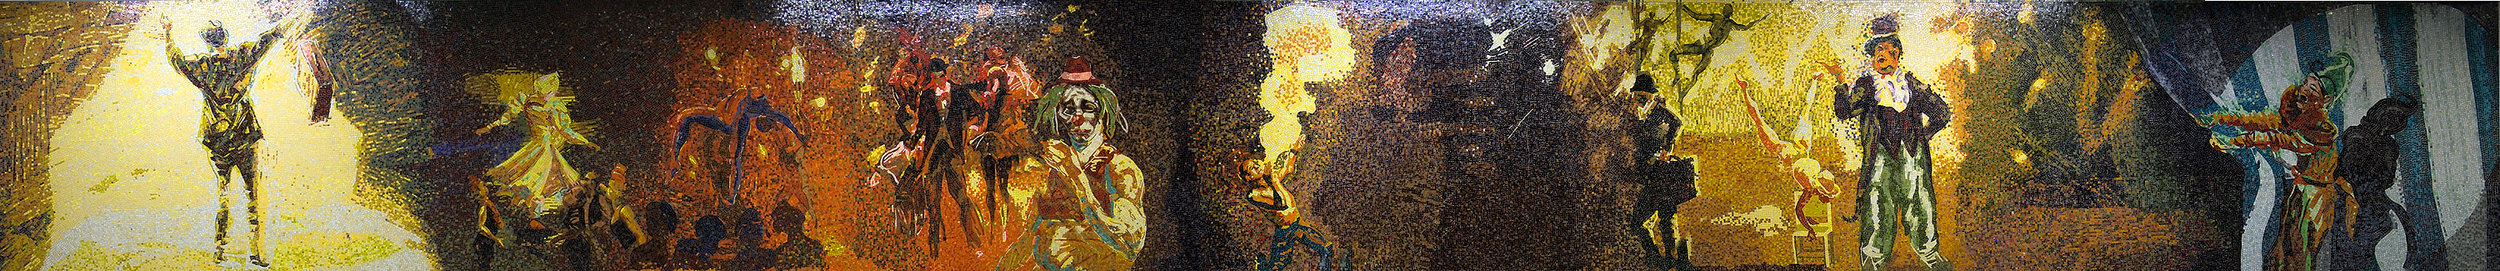 Garden of Circus Delights (subway mosaic), 2001, glass mosaic  - 34th St. Penn Station (main wall), 72 x 60ft in.